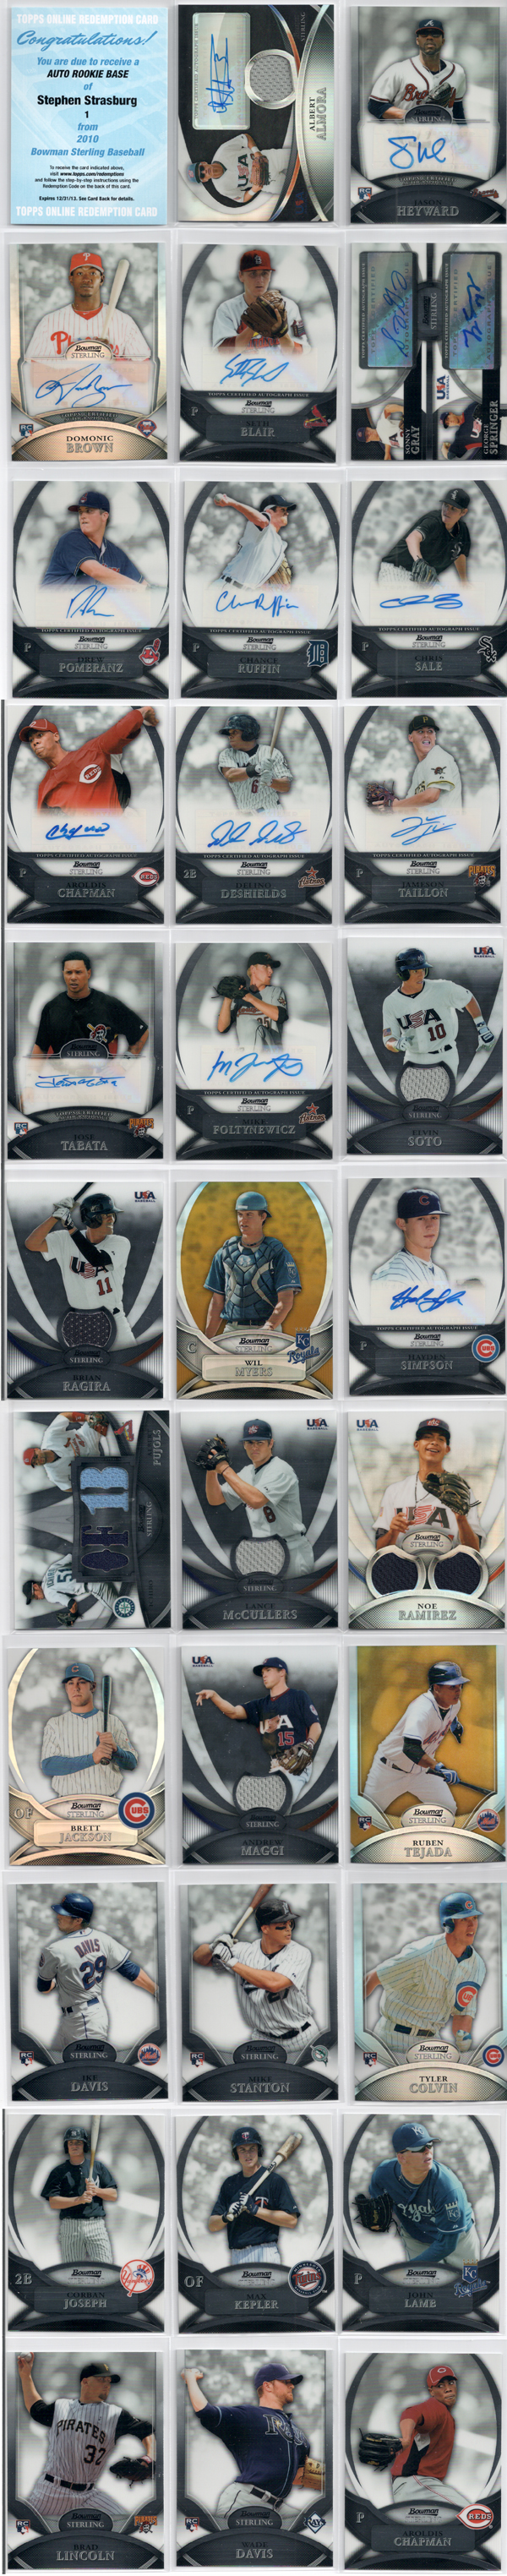 2010 Bowman Sterling Baseball Review 1